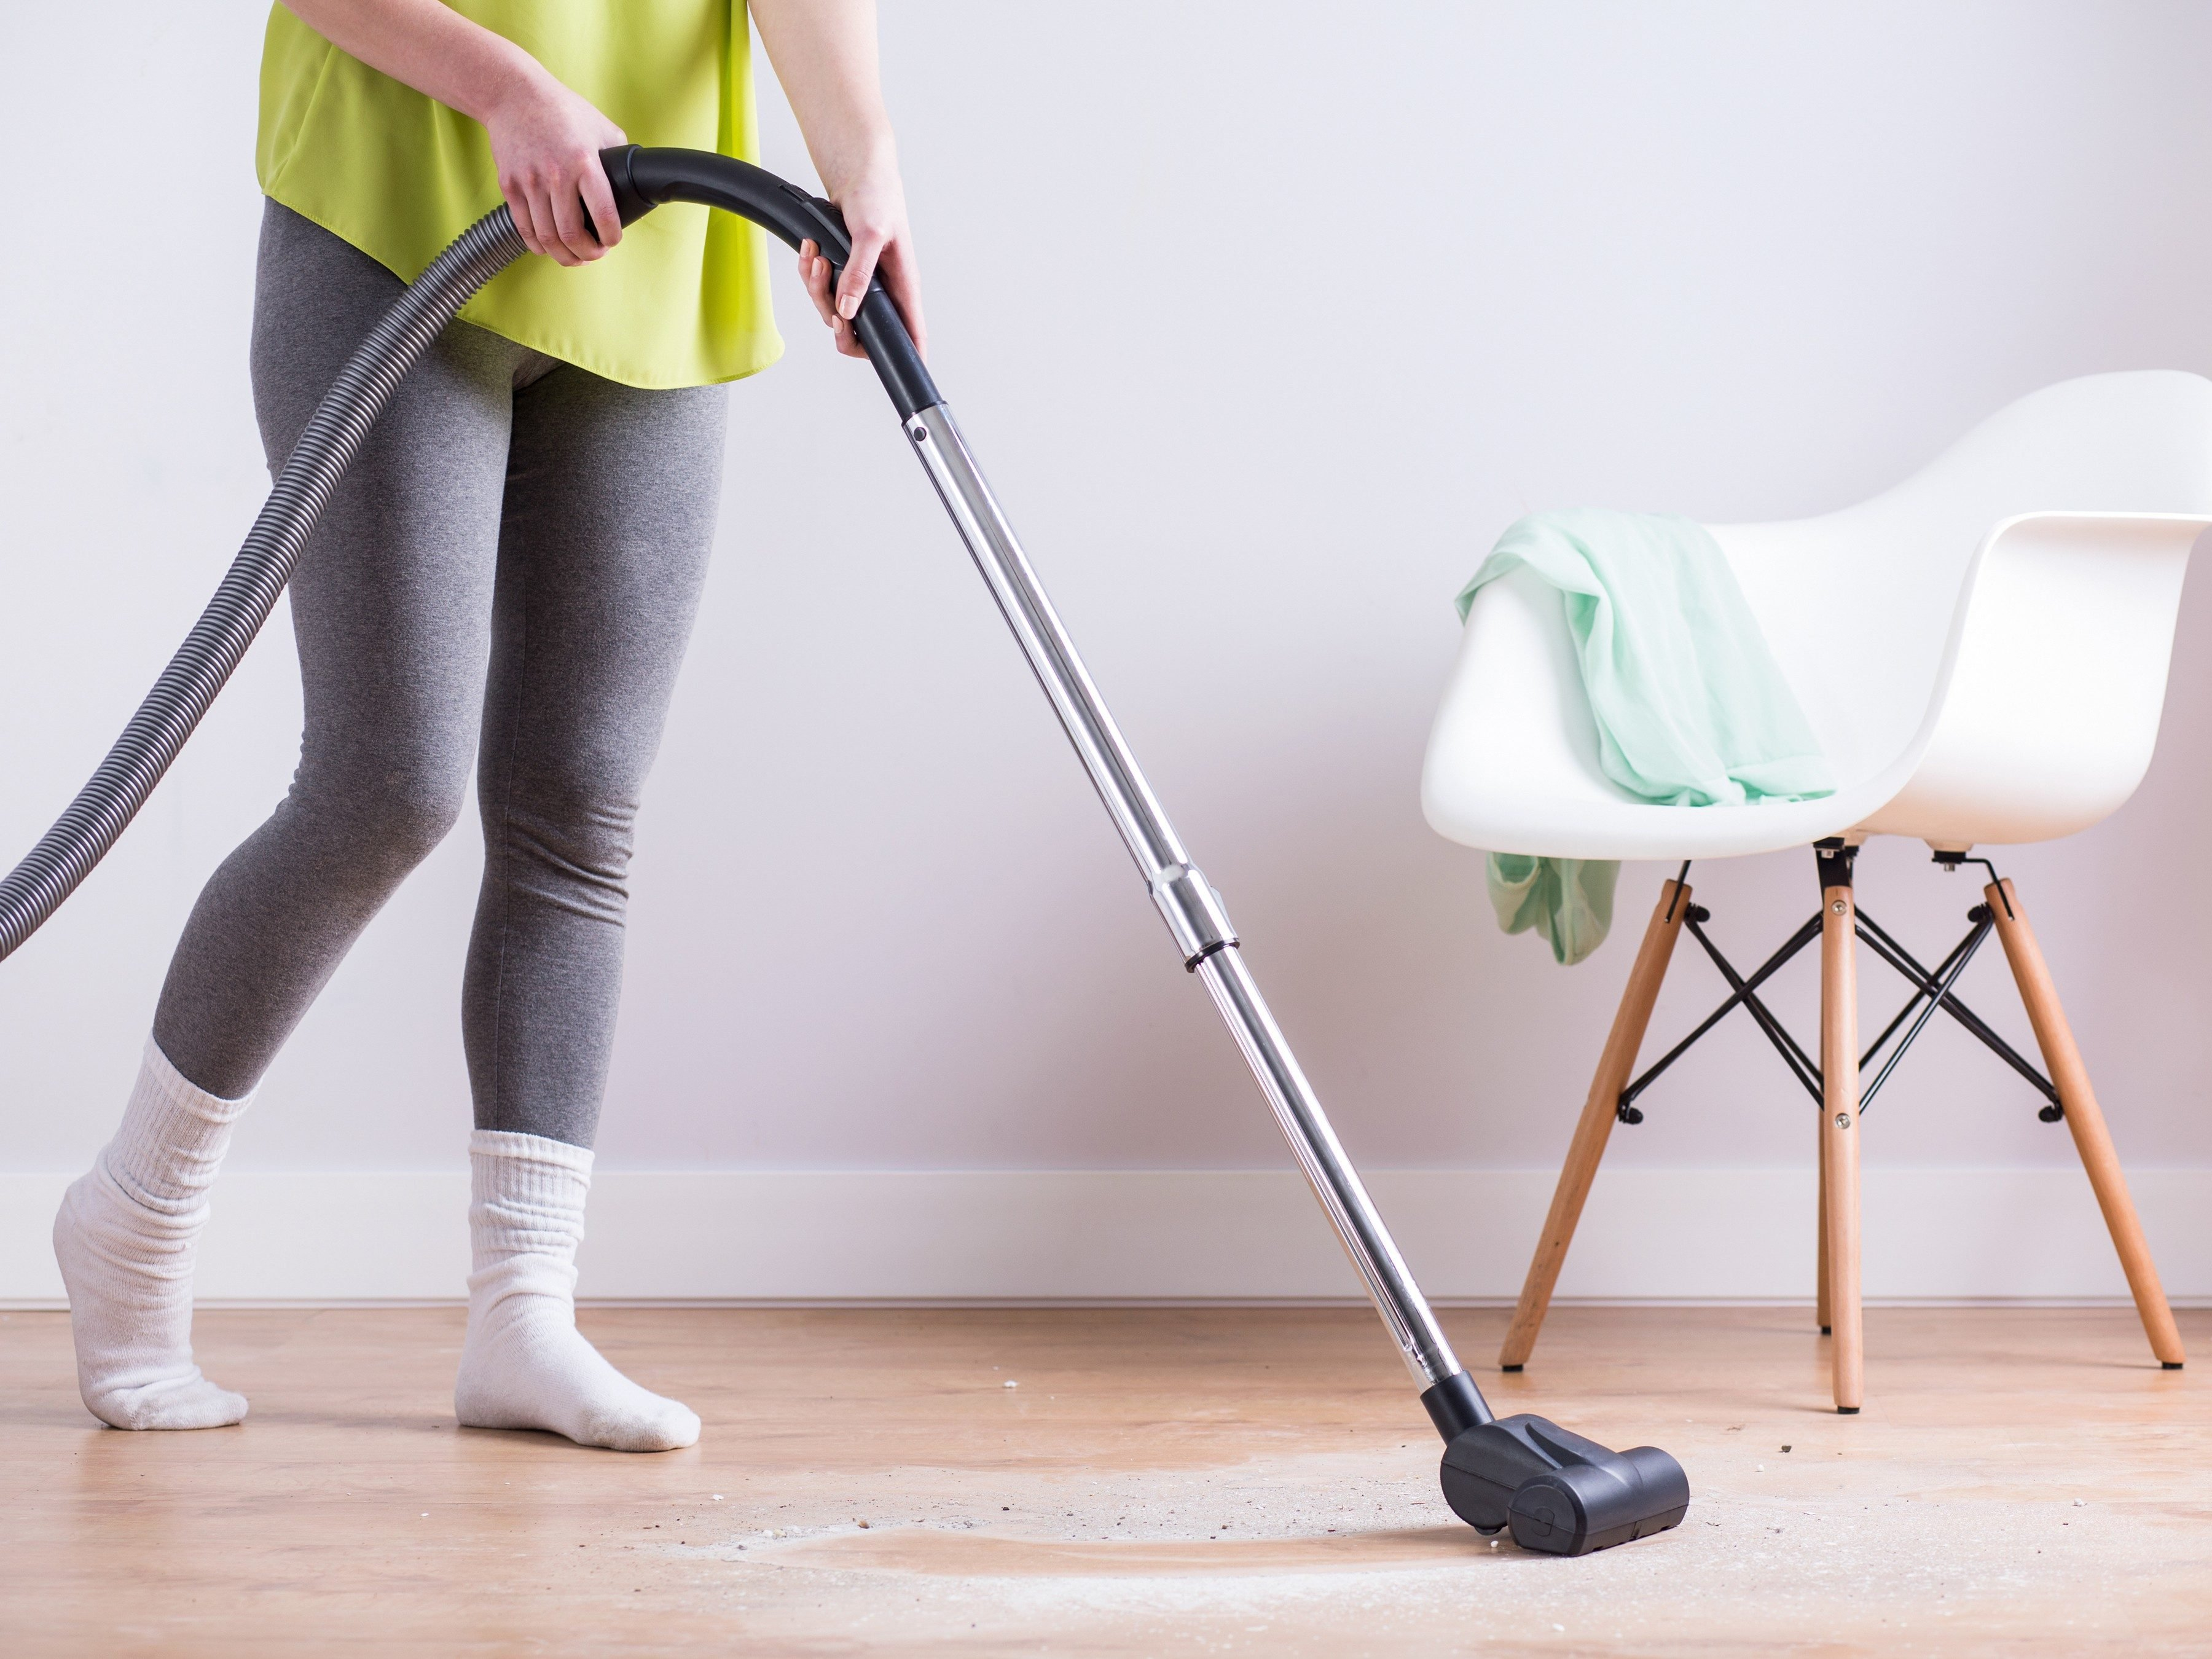 3. Reuse a Vacuum Cleaner Bag With Masking Tape